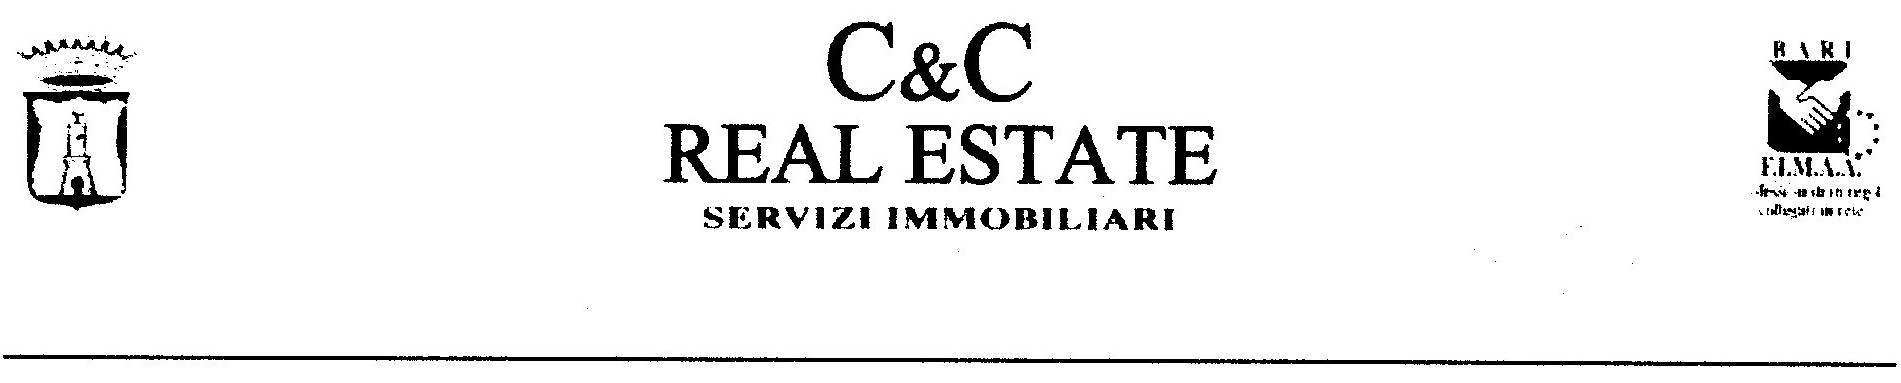 C & C  REAL ESTATE SERVIZI IMMOBILIARI